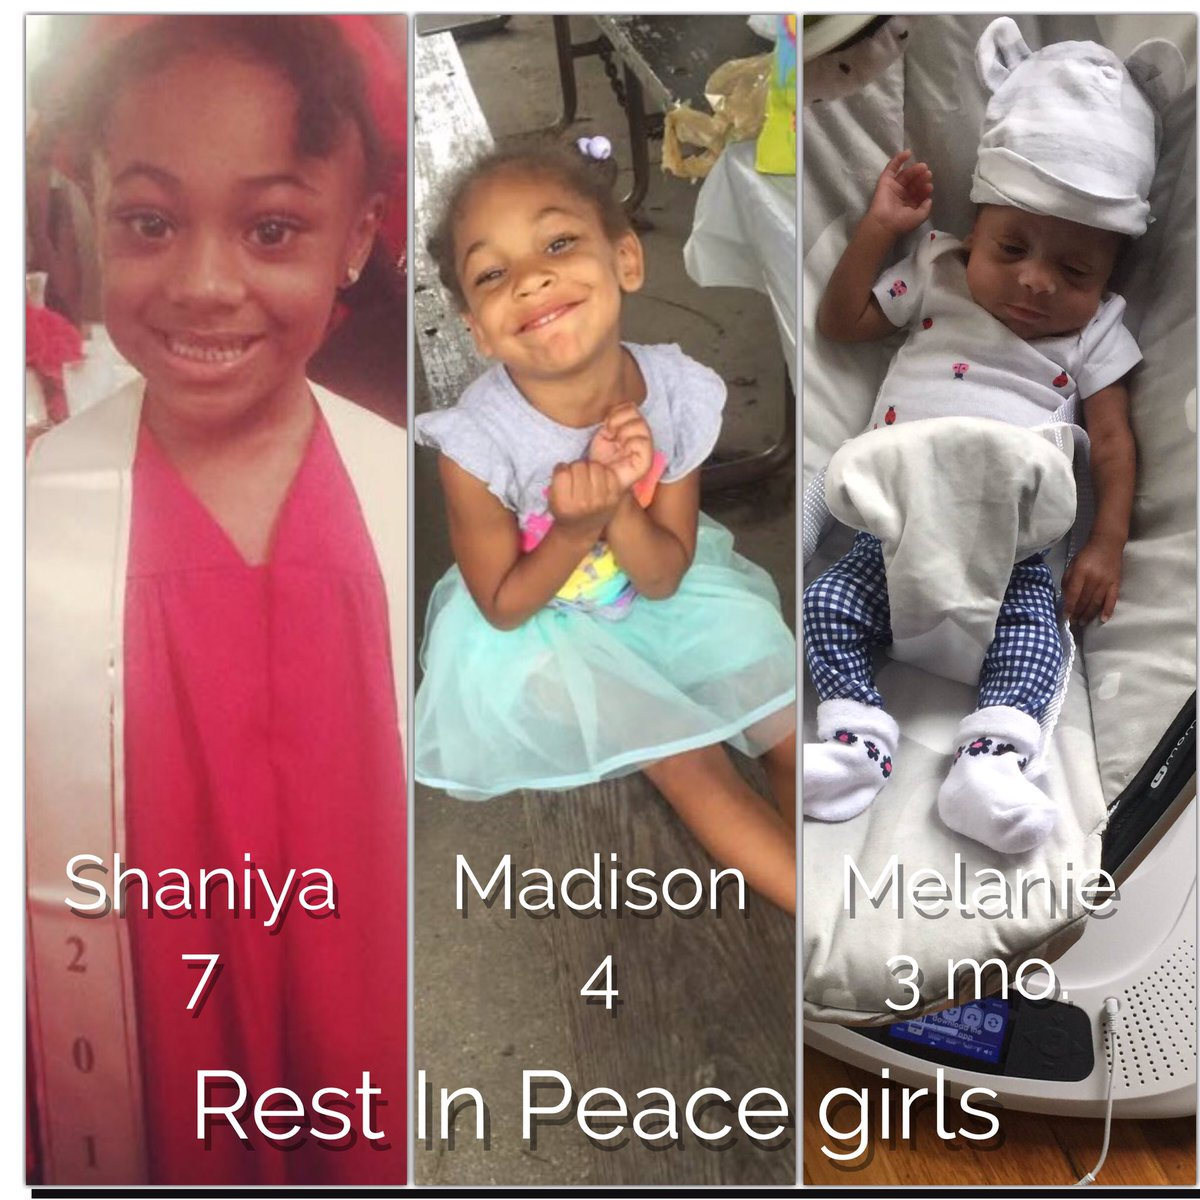 RIP: The youngest victims in Tues morning's fire at 81/Essex. Shaniya, Madison & Melanie @WGNNews